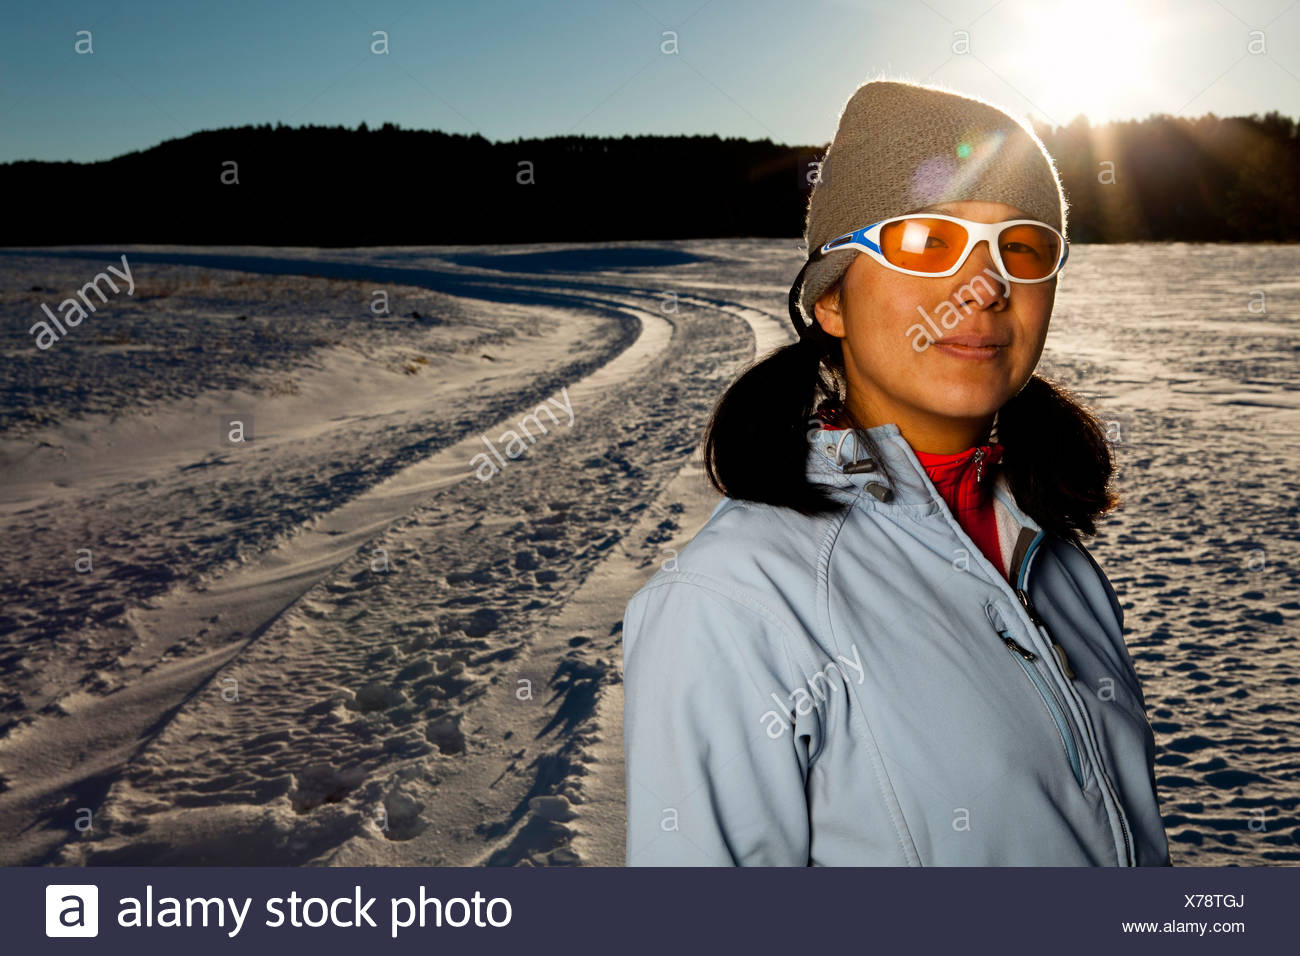 a Japanese-American woman has her portrait taken after running down a snowy road in Custer State, South Dakota. - Stock Image